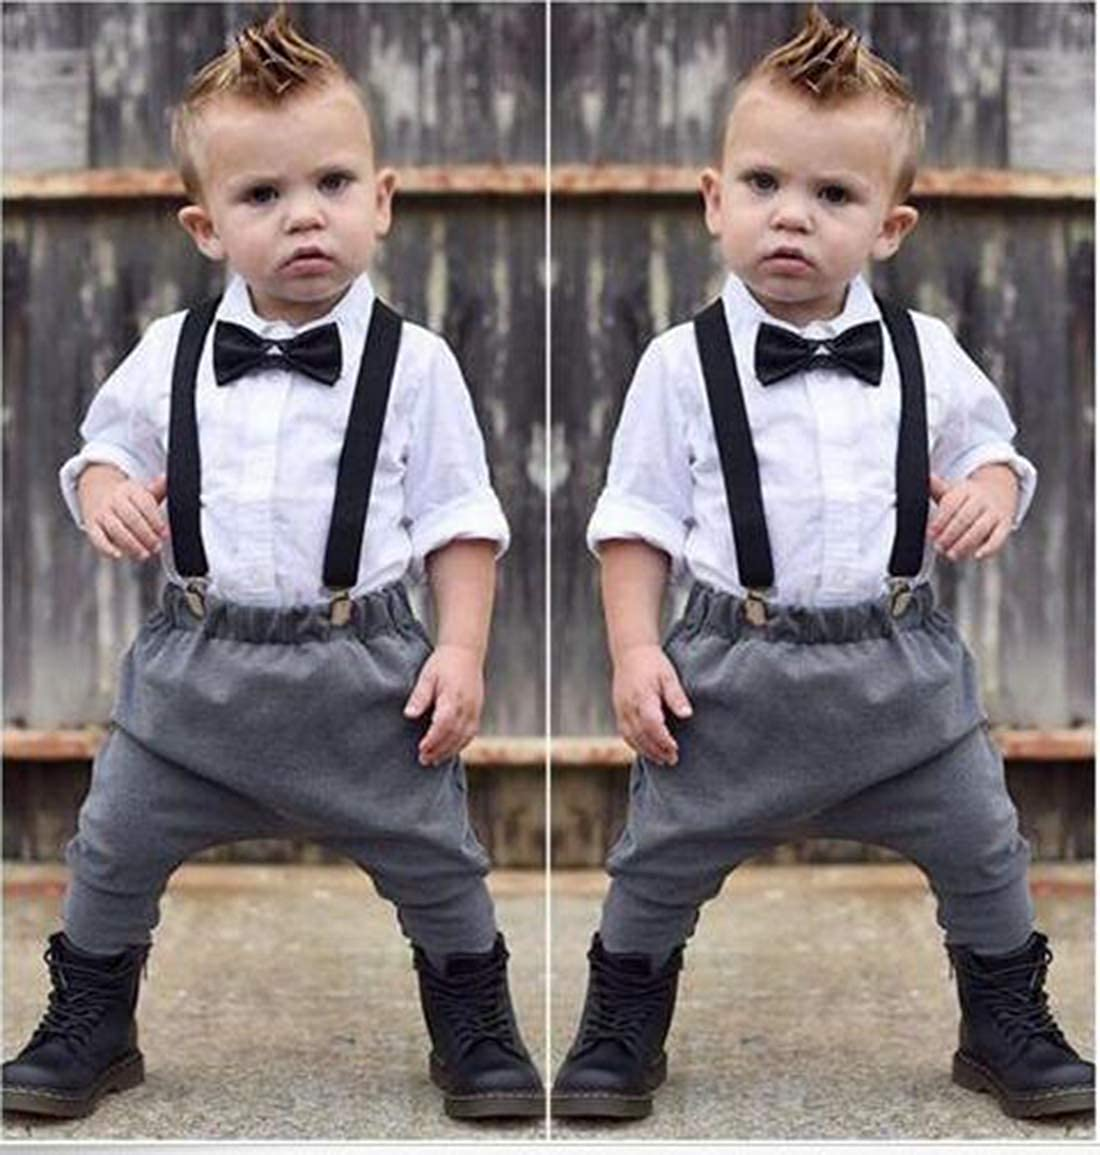 Young U Toddler Infant Boy Grid Rompers Long Pants Formal Wear with Bowtie Outfits Gentleman Set